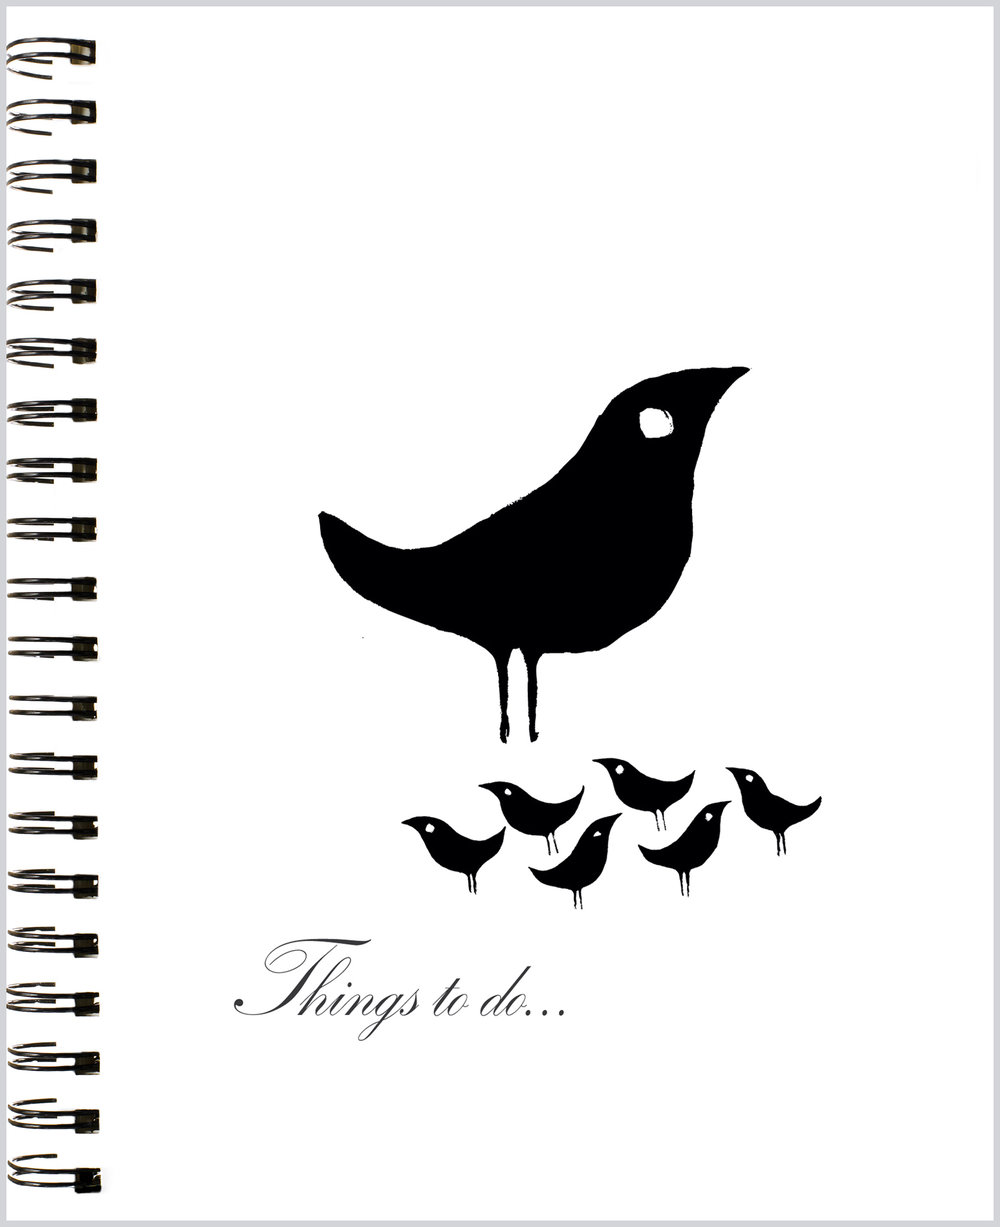 LittleNoteCard_BlackBirdies_Blank Journal